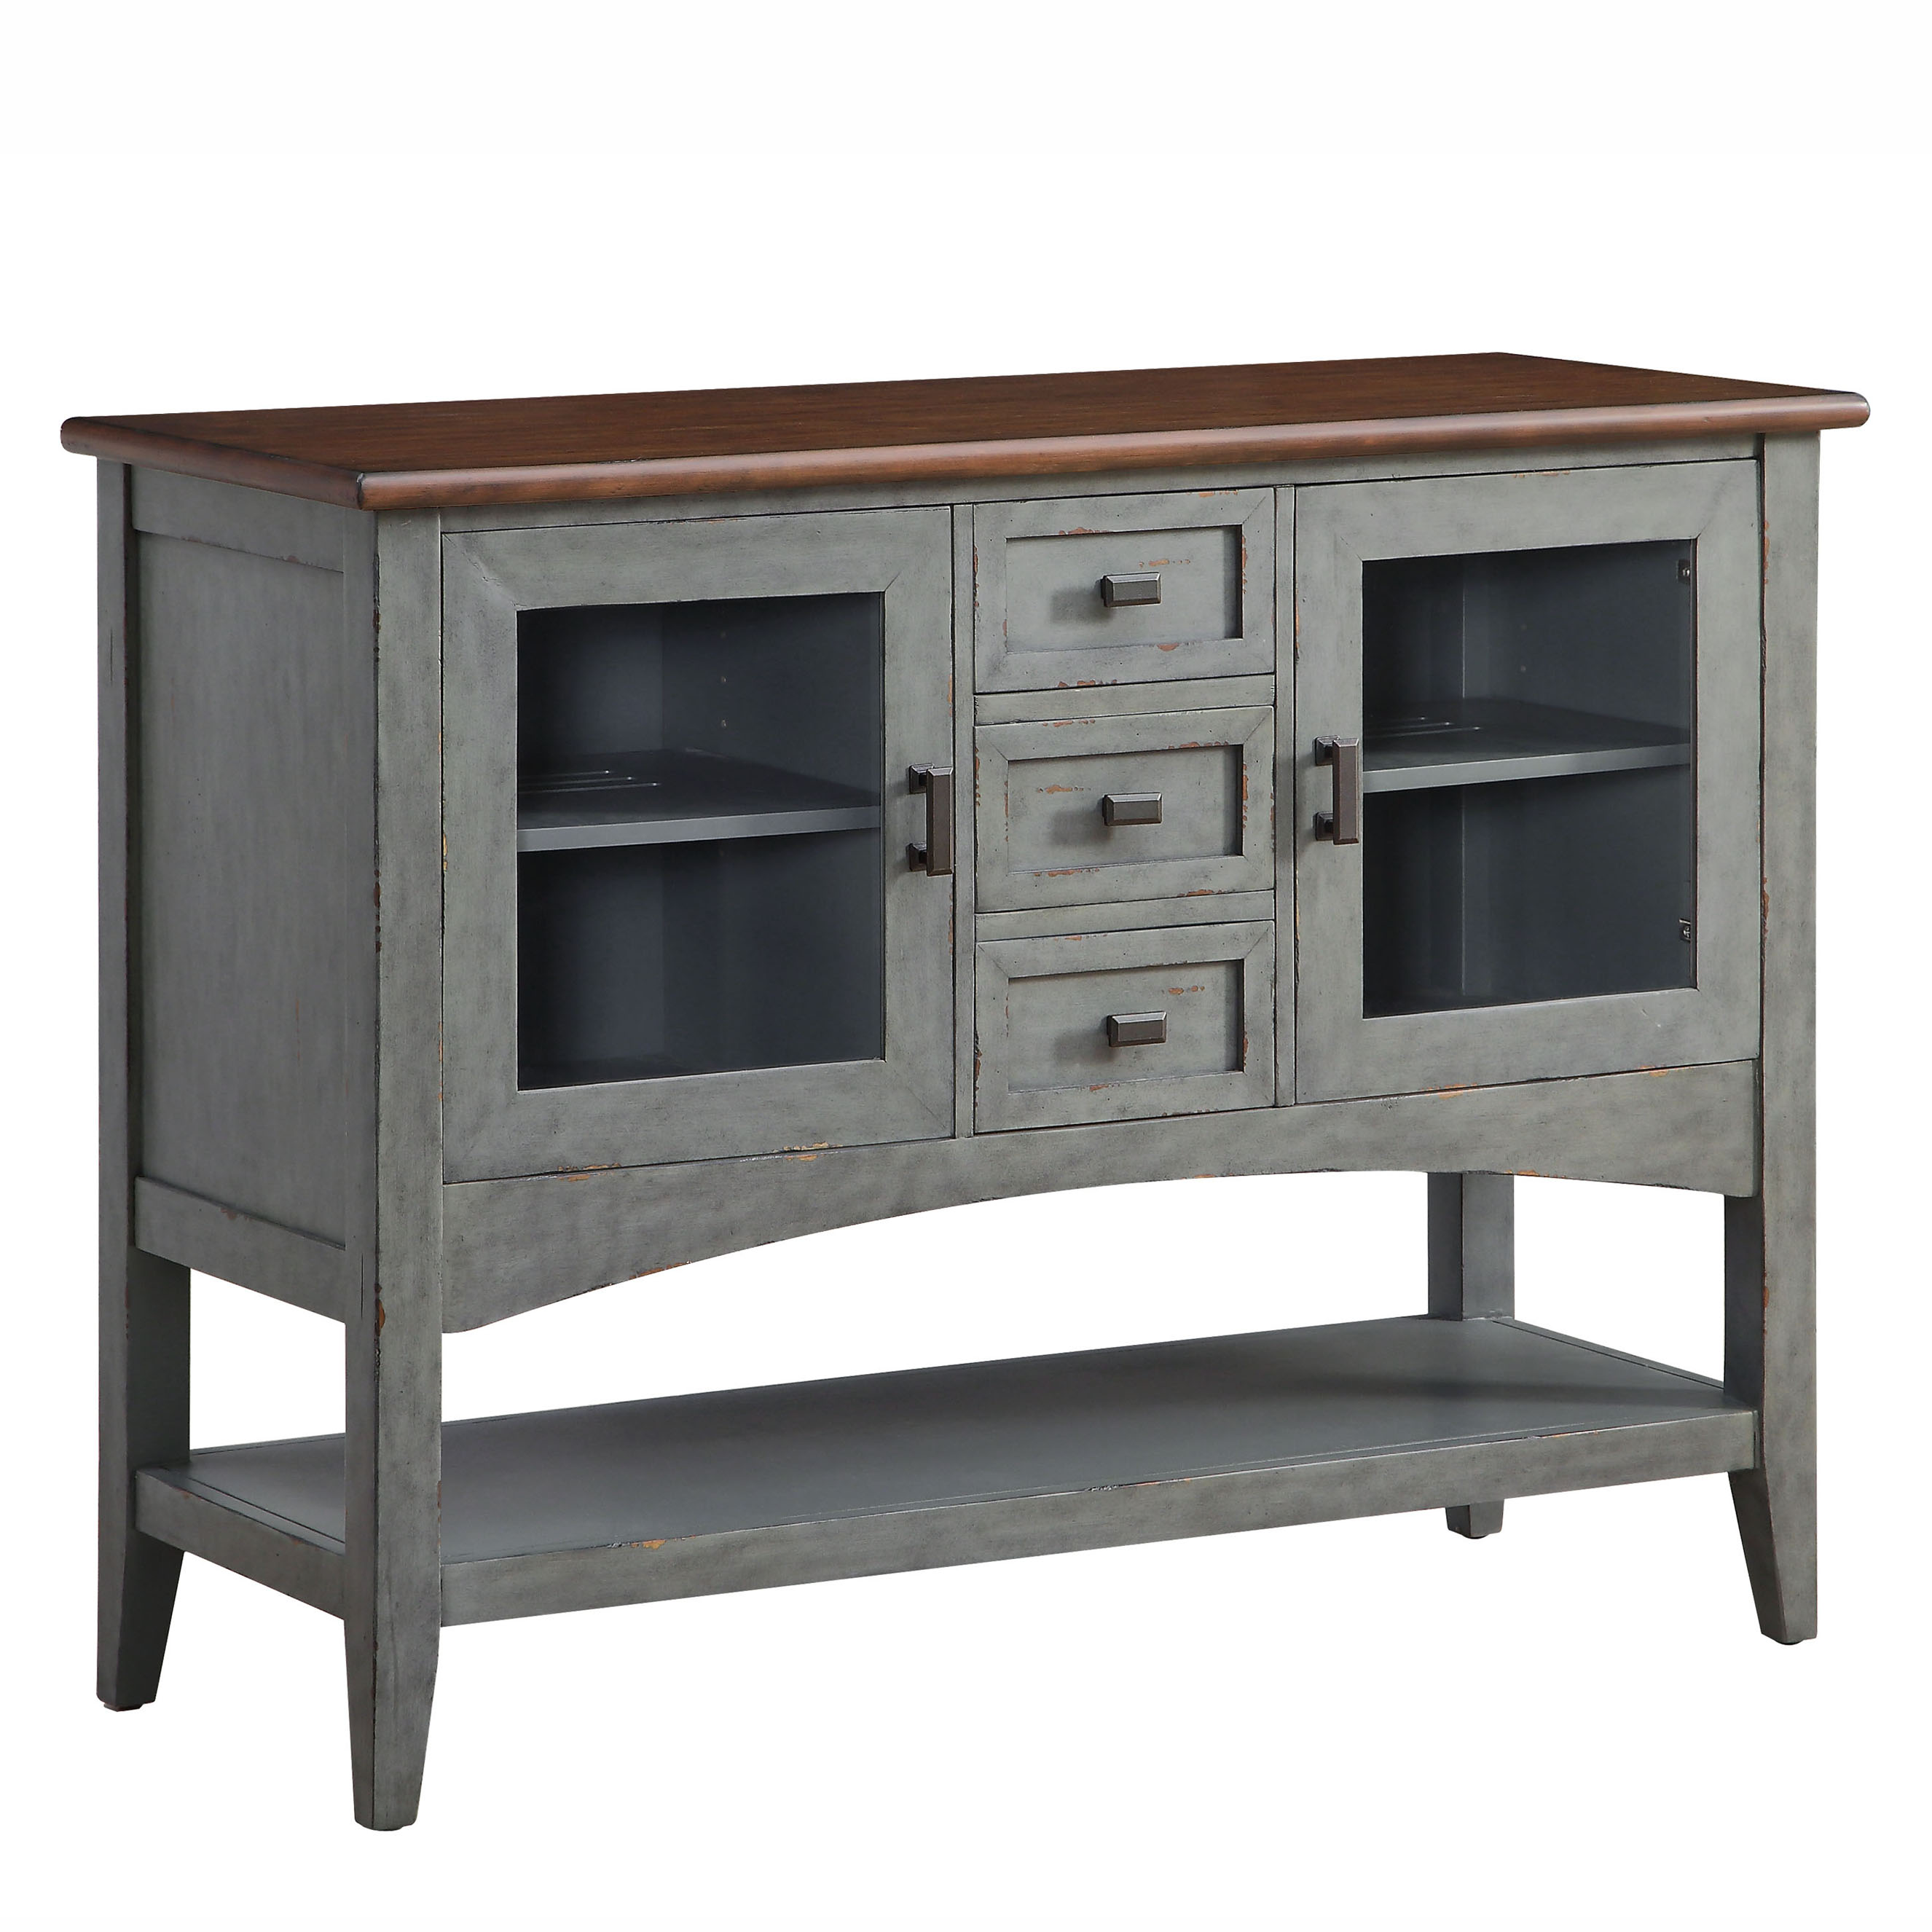 bayside furnishings take accent table cabinet reclaimed wood drawer nightstand large lamp shades for floor lamps target teal end ikea painted furniture garden corner square